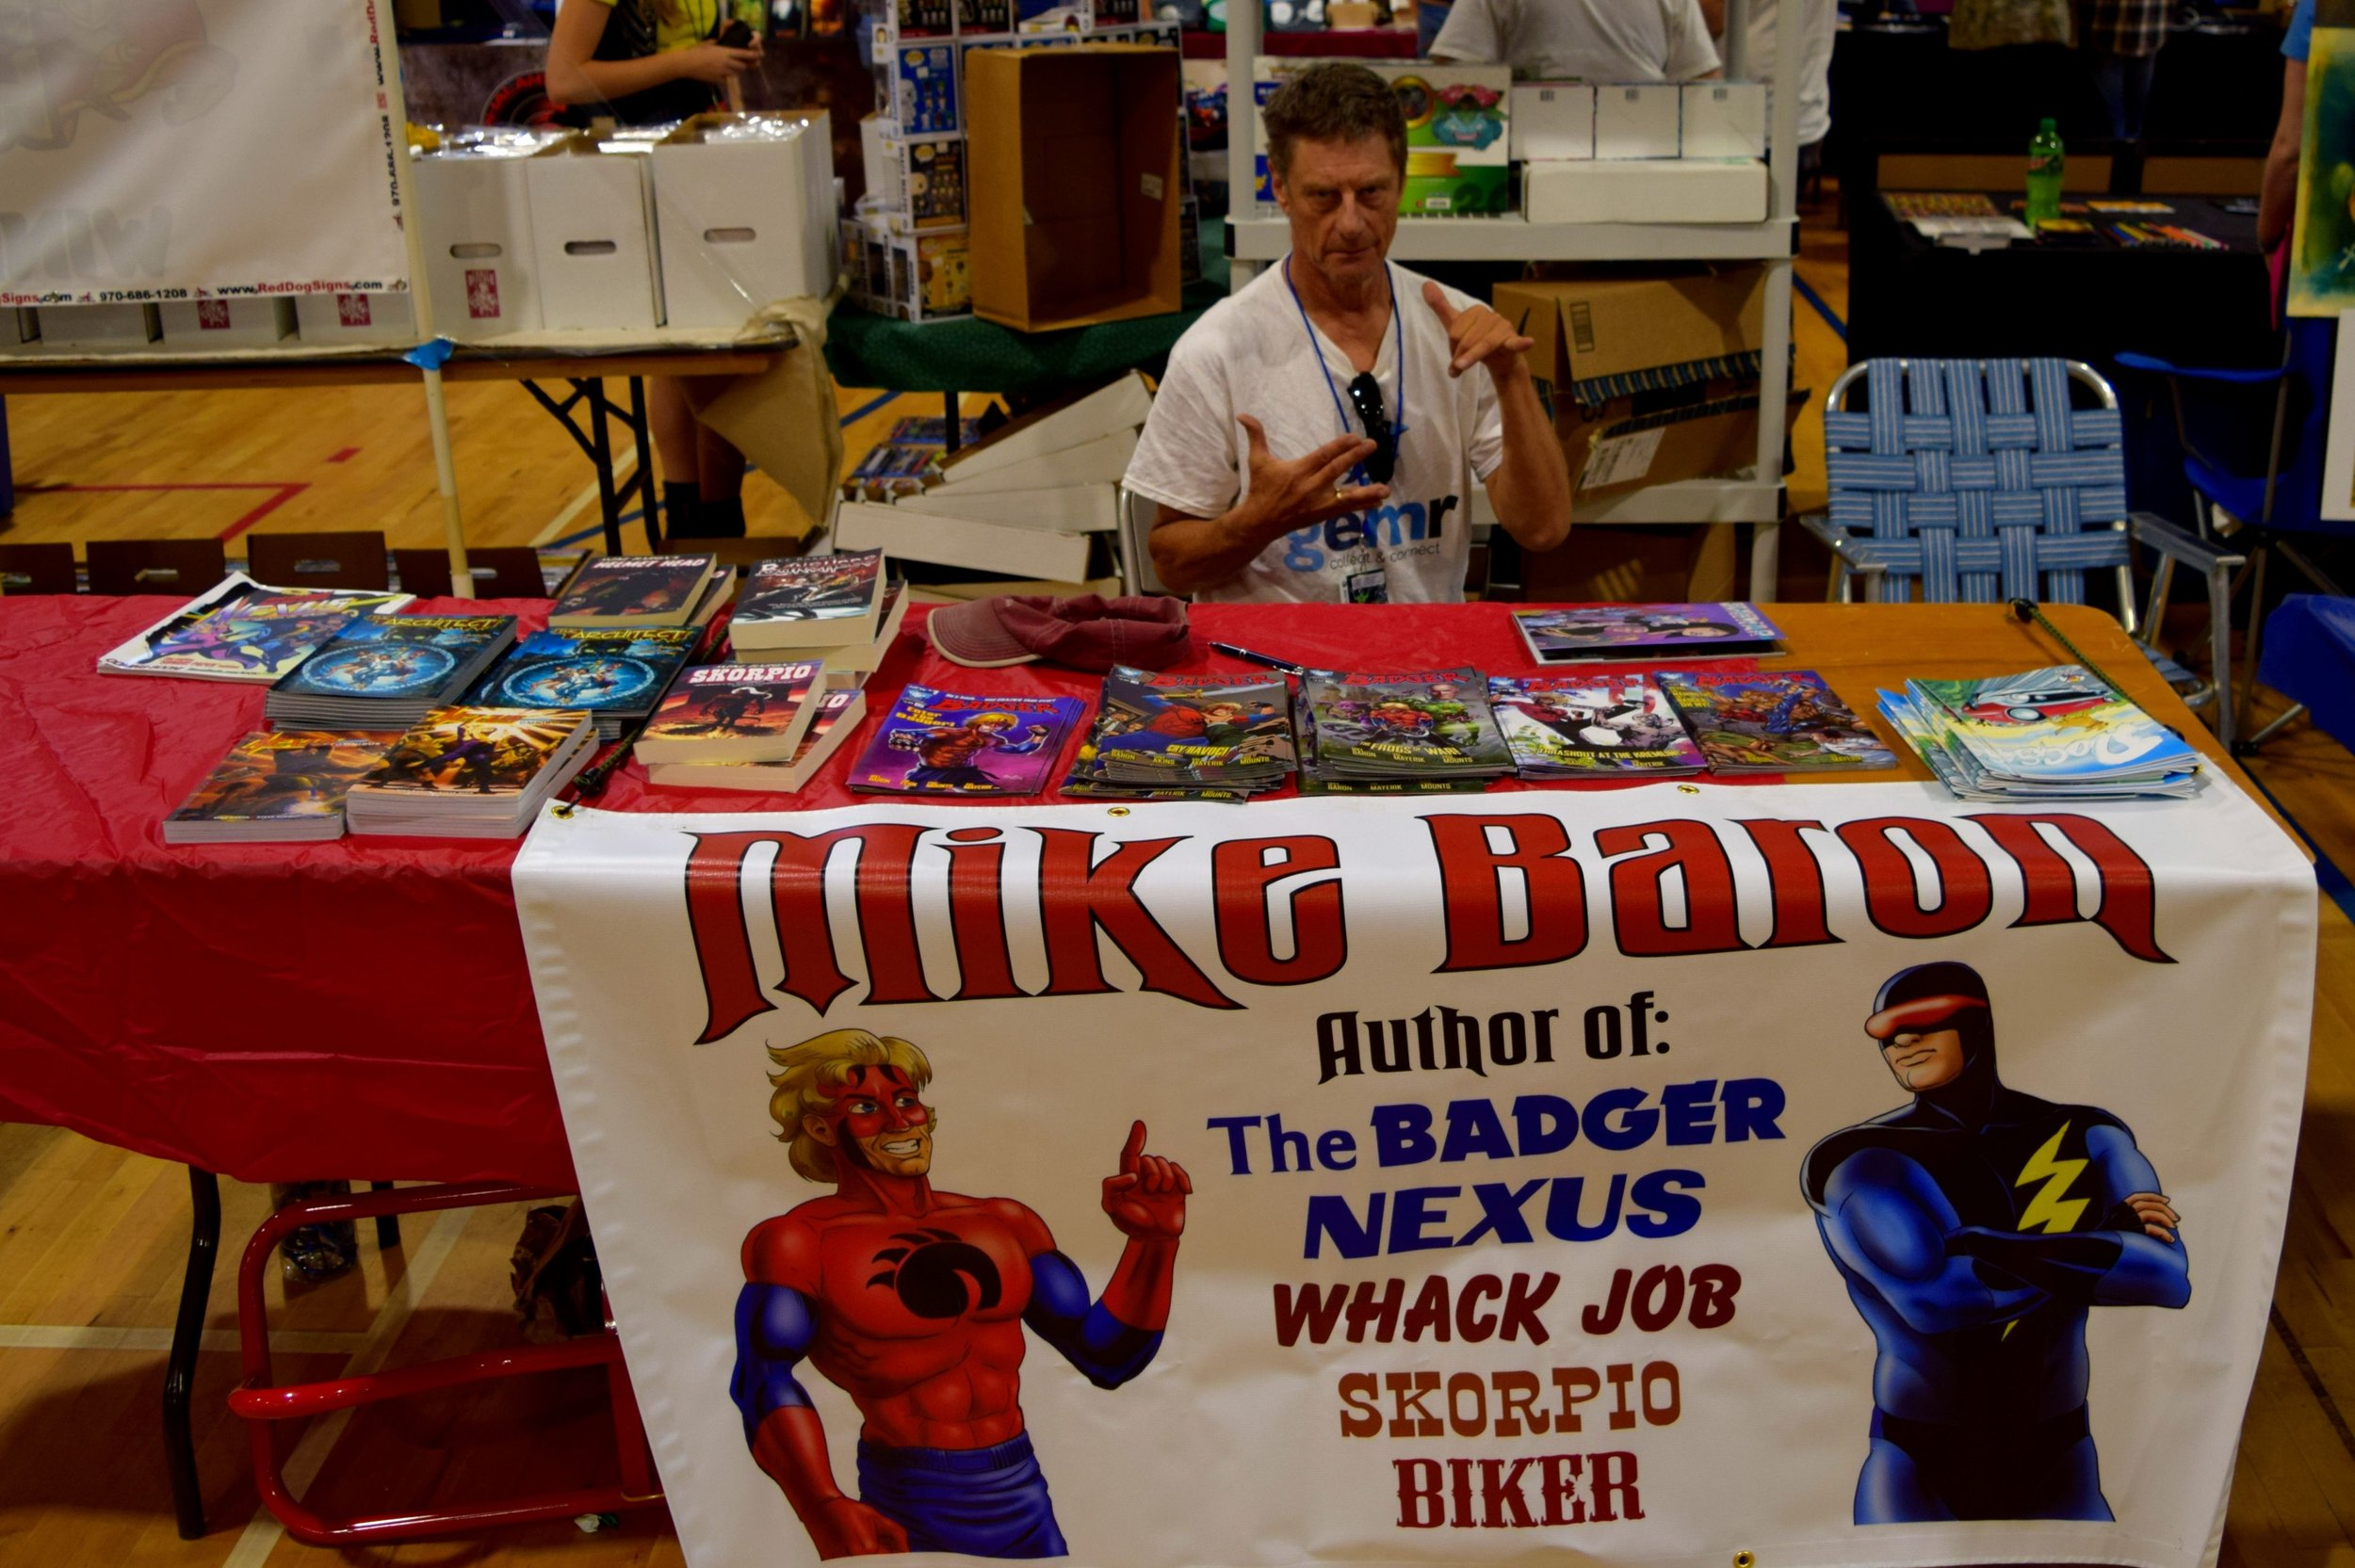 An Interview With Mike Baron of The Badger & Nexus (Fort Collins Comic Con 2016)   Written by Neil Greenaway